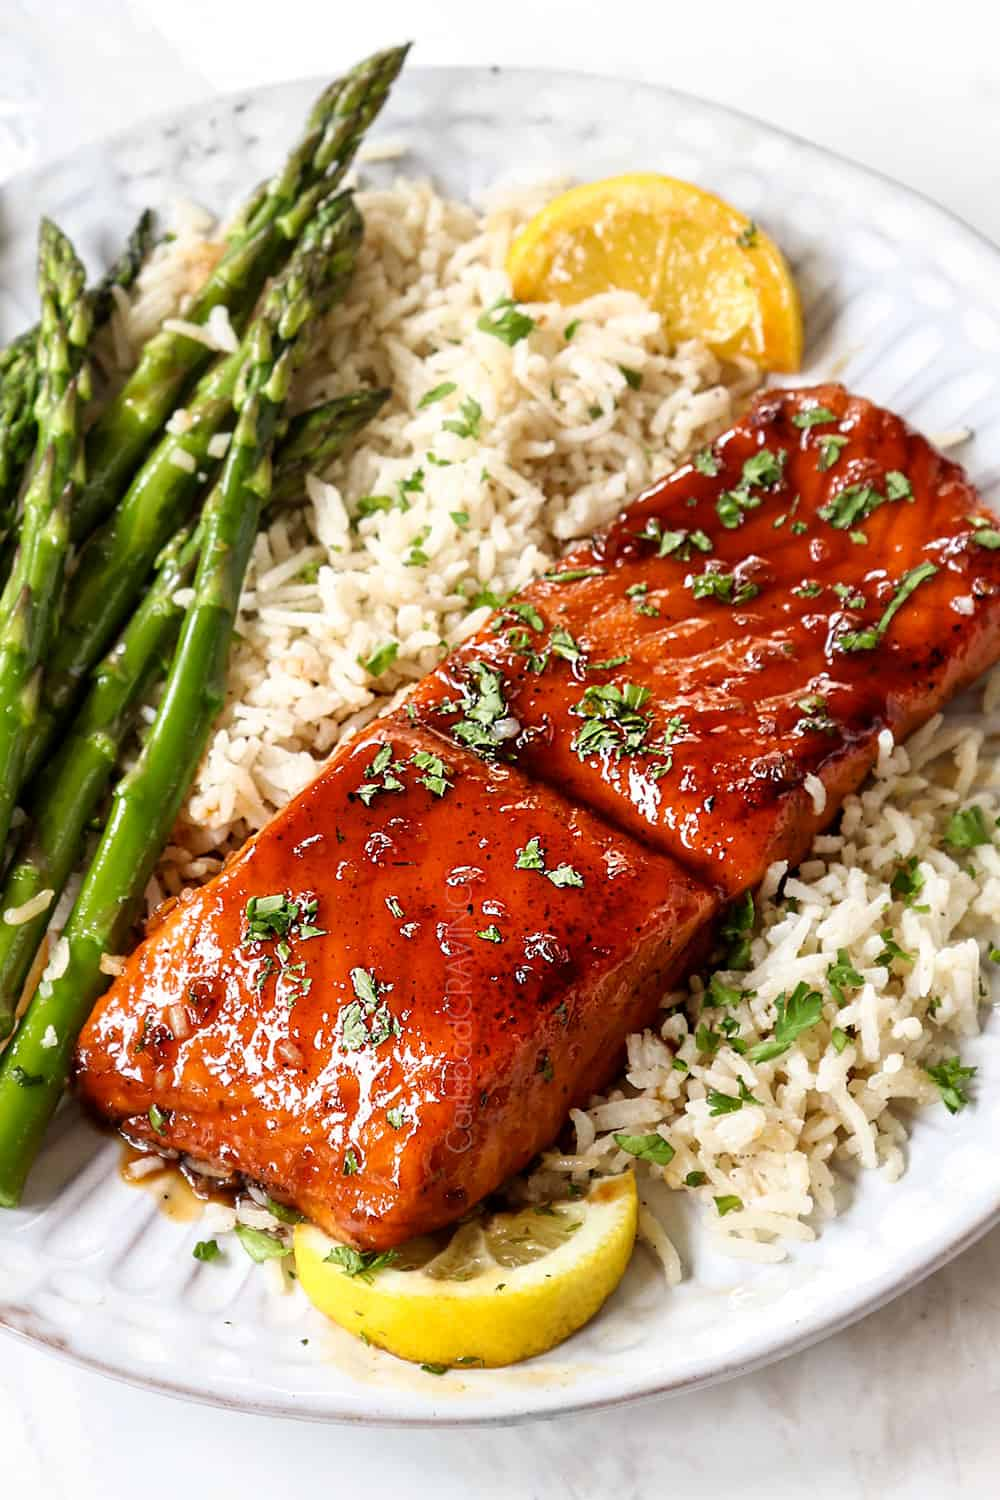 showing how to serve honey garlic glazed salmon by serving on a white plate with jasmine rice, asparagus and lemon wedges garnished by chopped parsley,